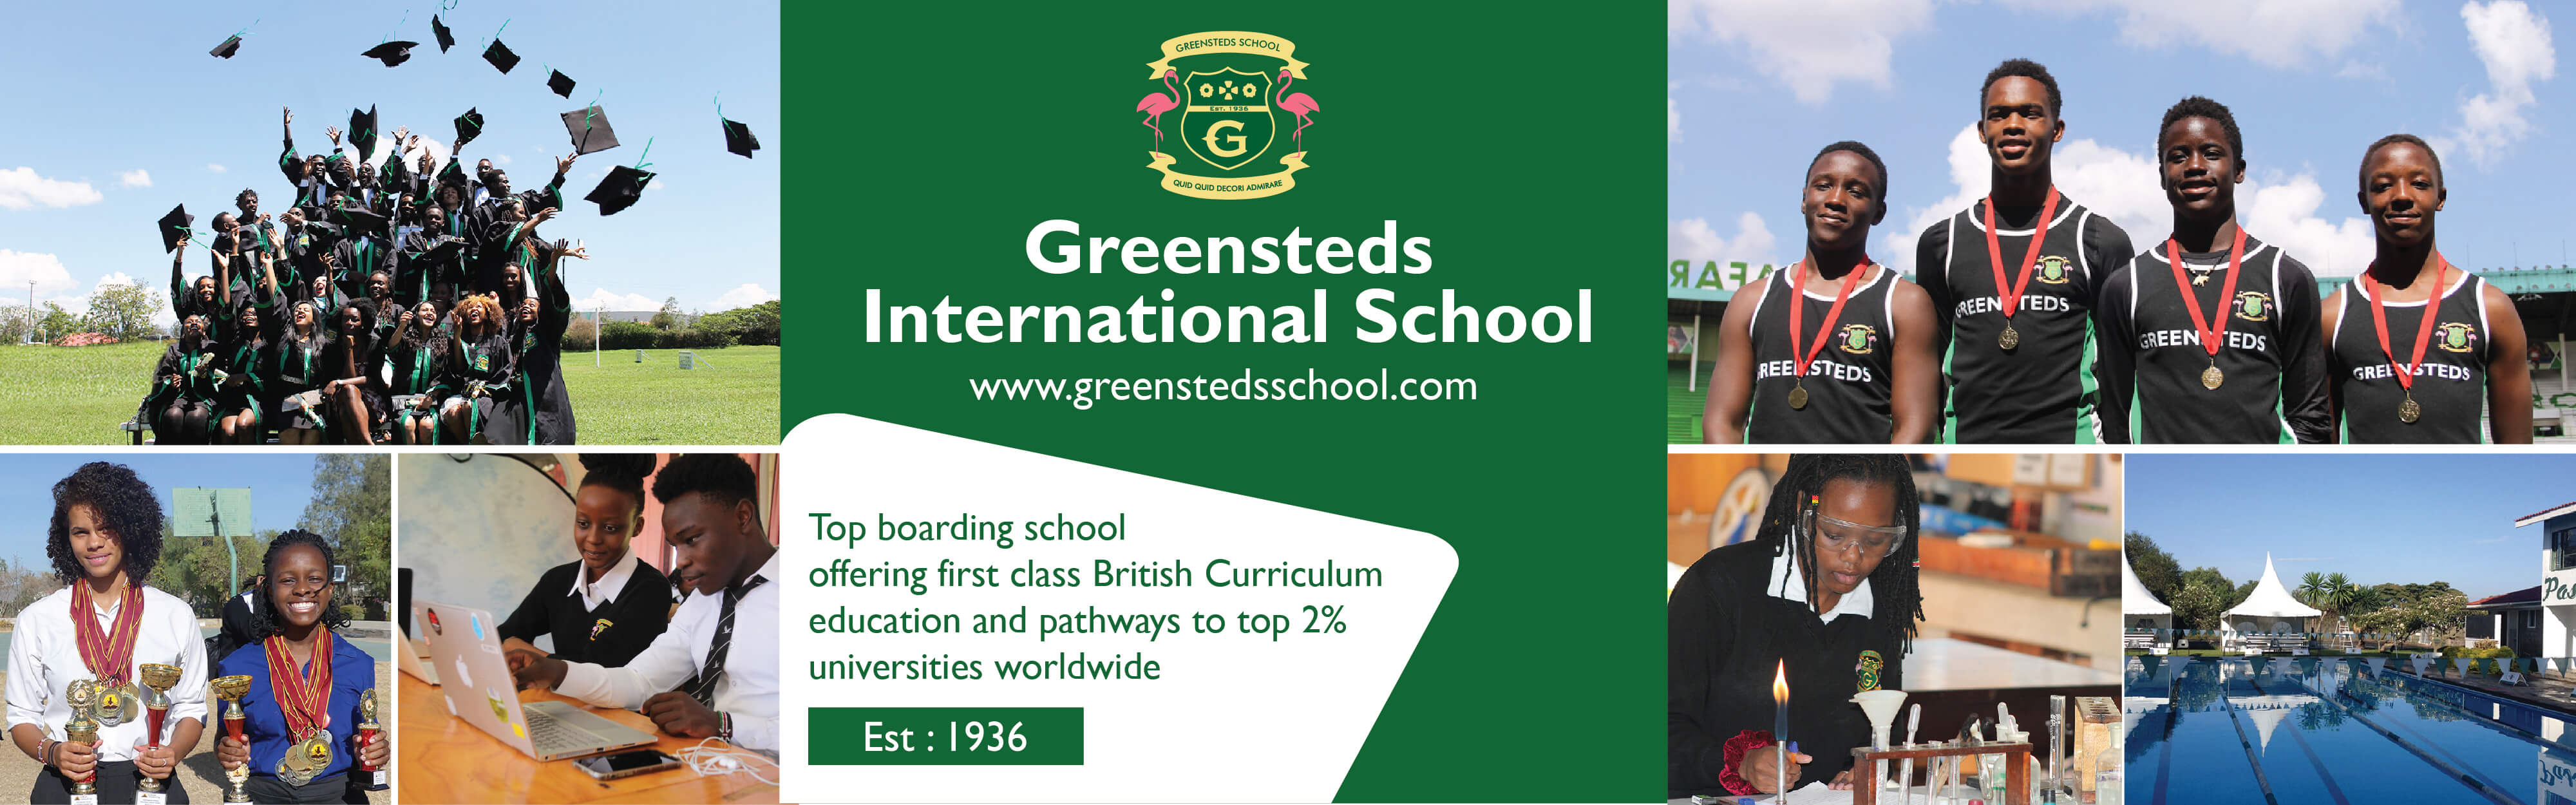 Greensteds_Website_Banner1